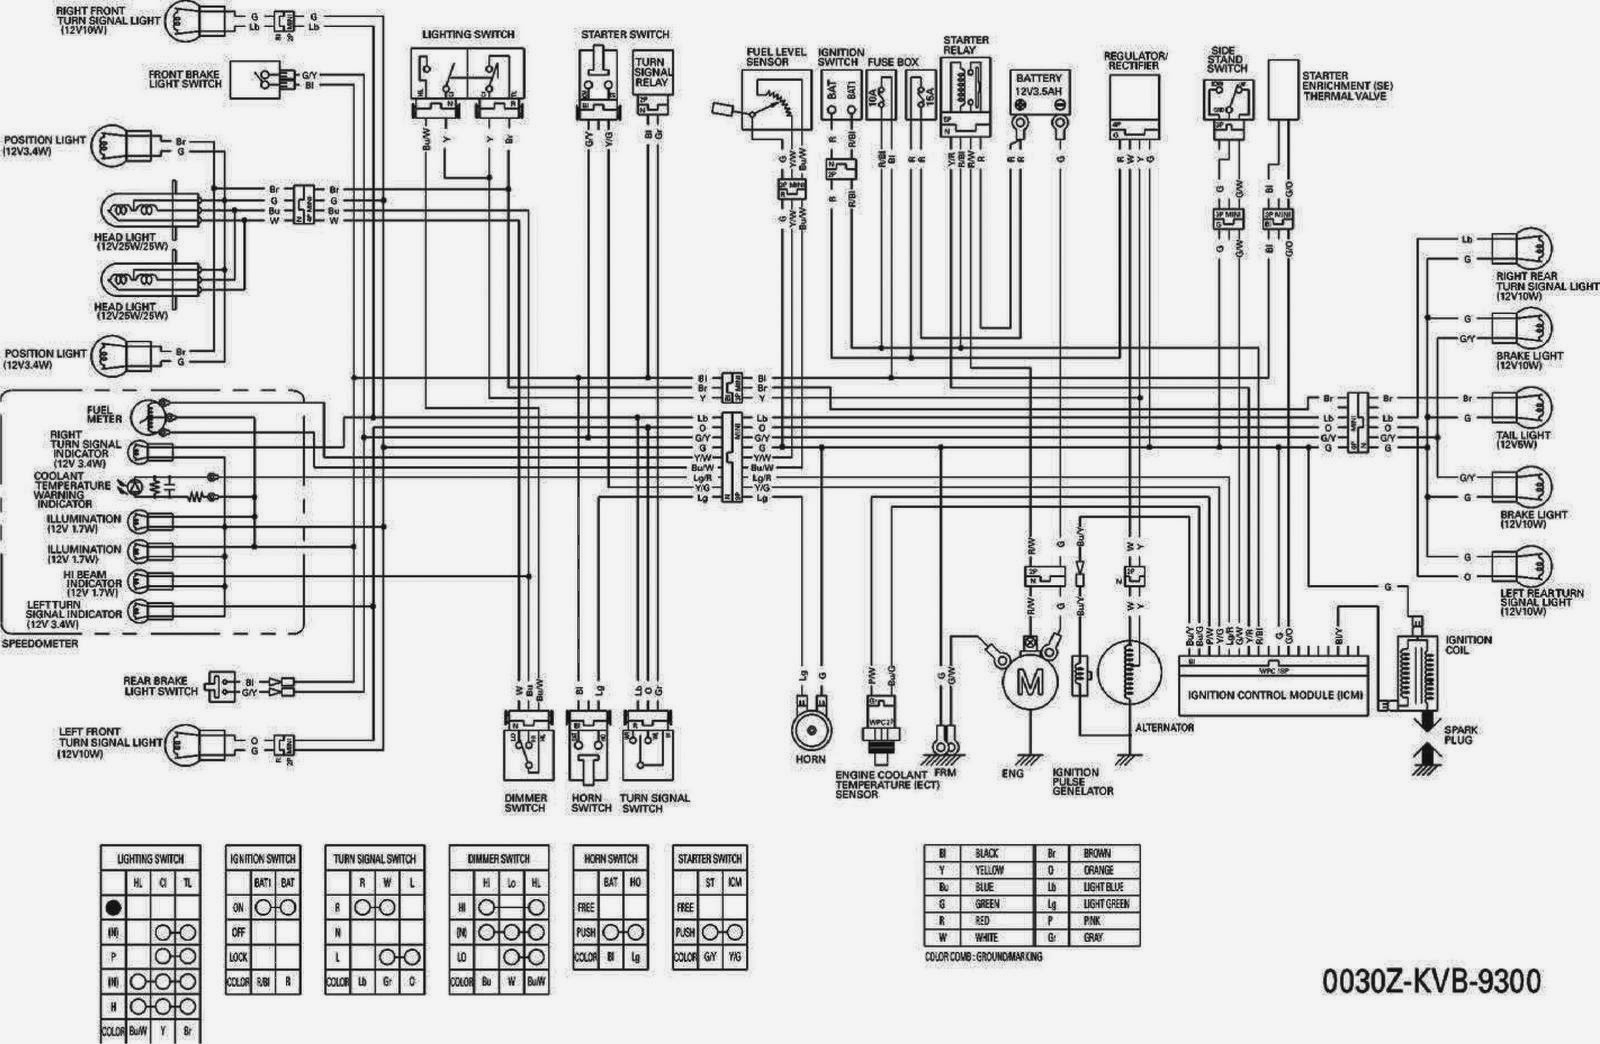 Yamaha 250 Bear Tracker Wiring Diagram